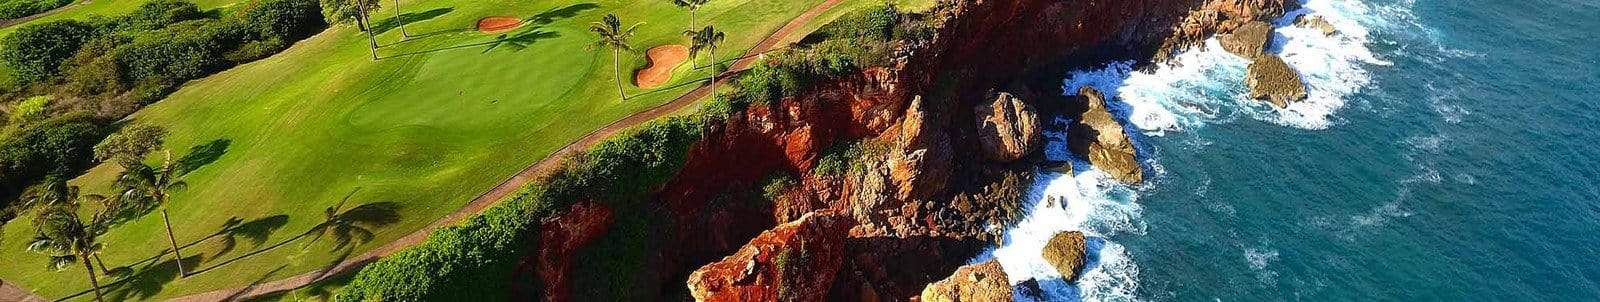 KAUAI GOLF CHALLENGE - ONLY $539